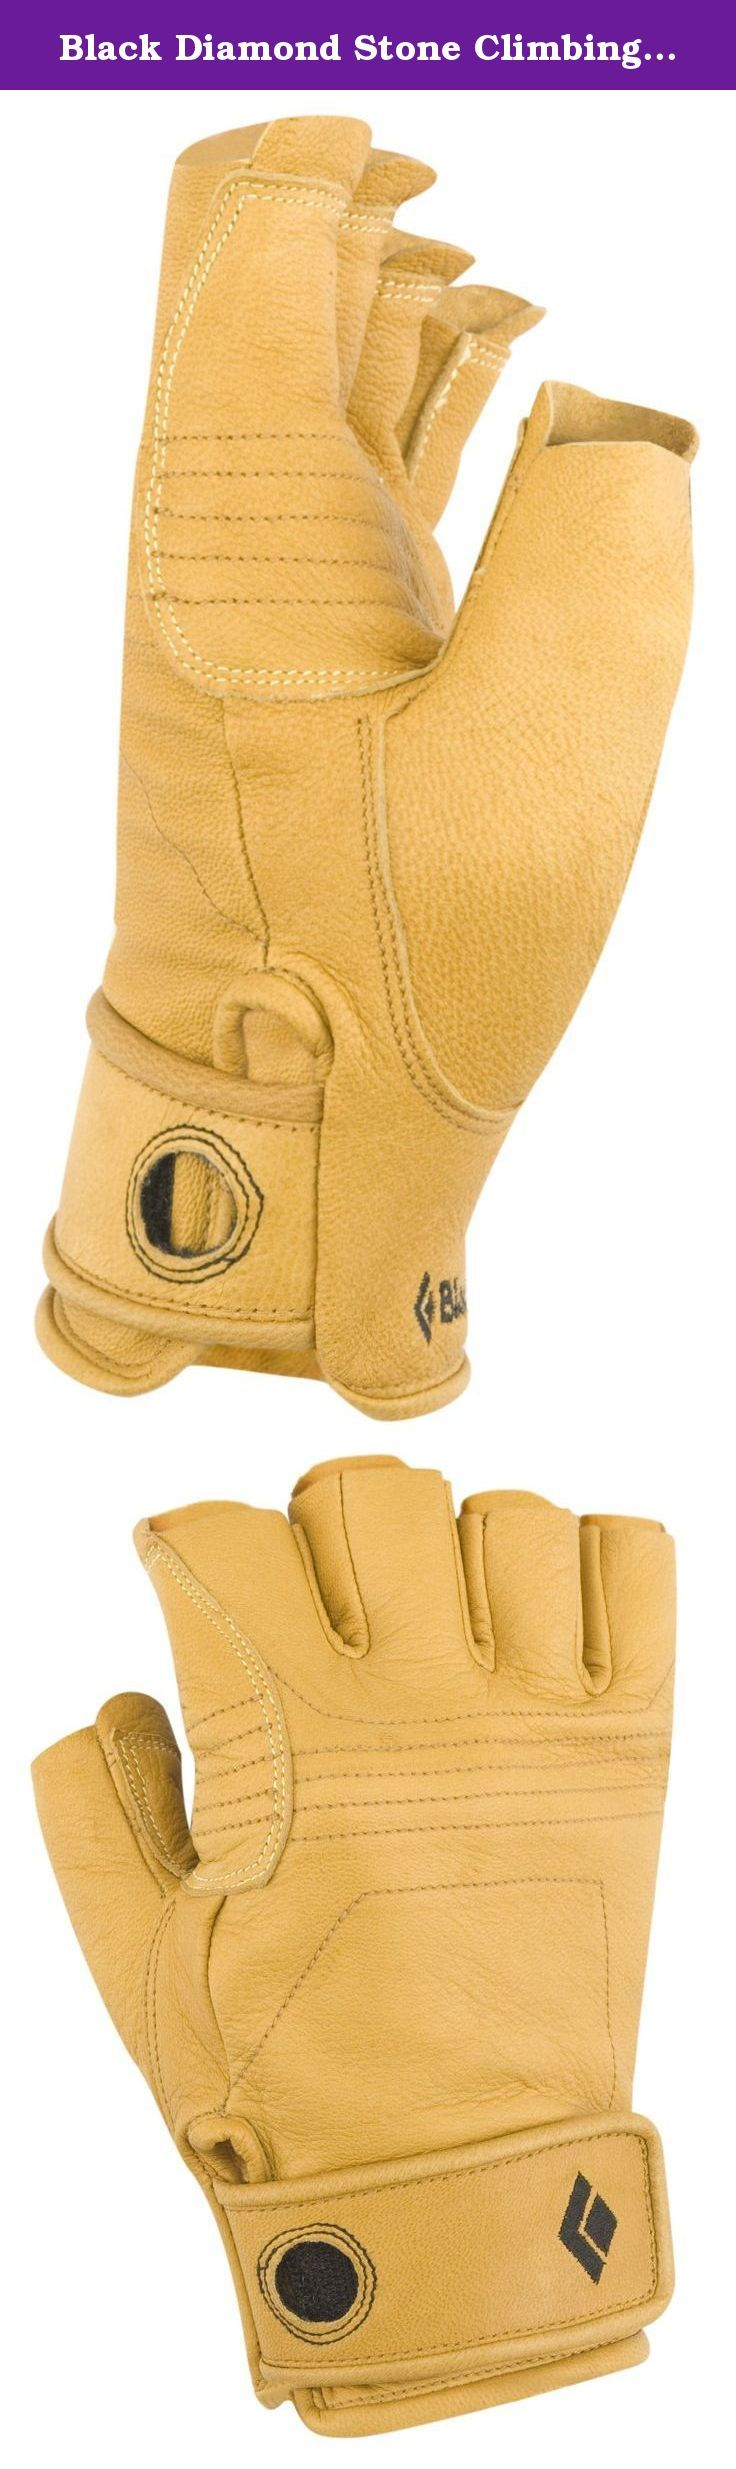 Black Diamond Stone Climbing Gloves, Natural, Medium. A 3/4-finger leather glove for dexterity-crucial climbing activities such as belaying, aid climbing and jugging. Imported.